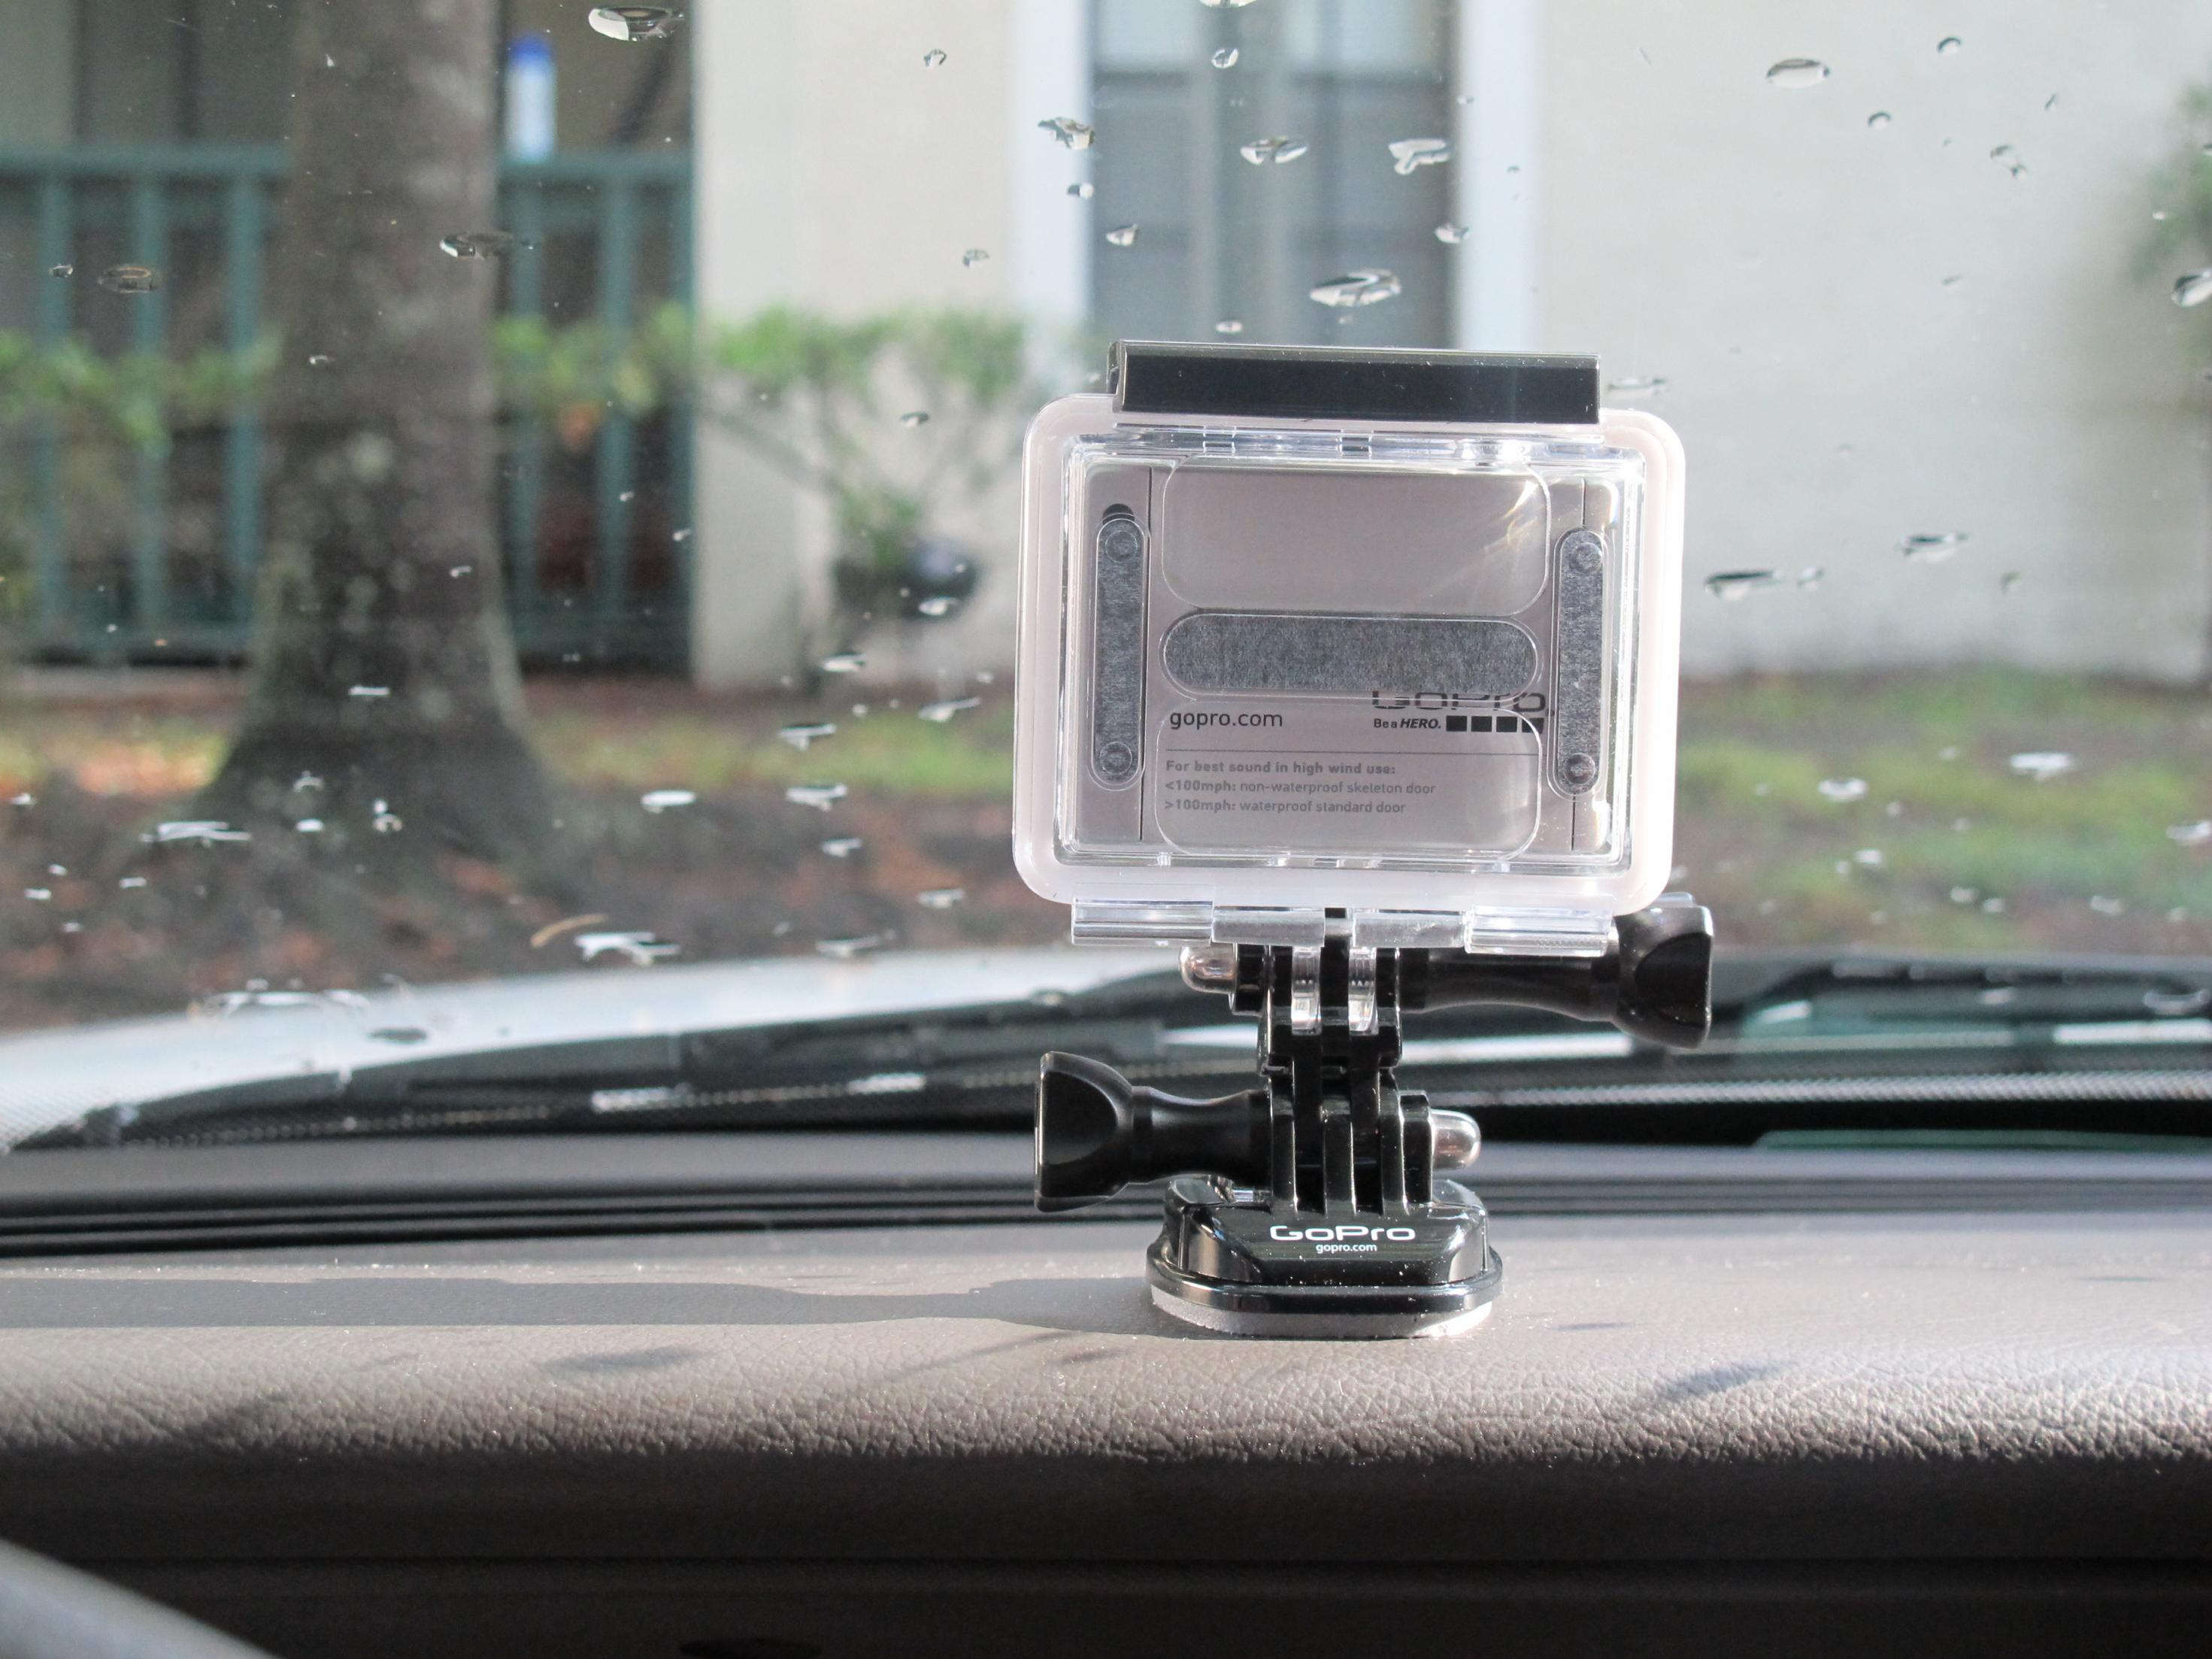 New Toy Doubles as Excellent Dash Cam-img_0526.jpg